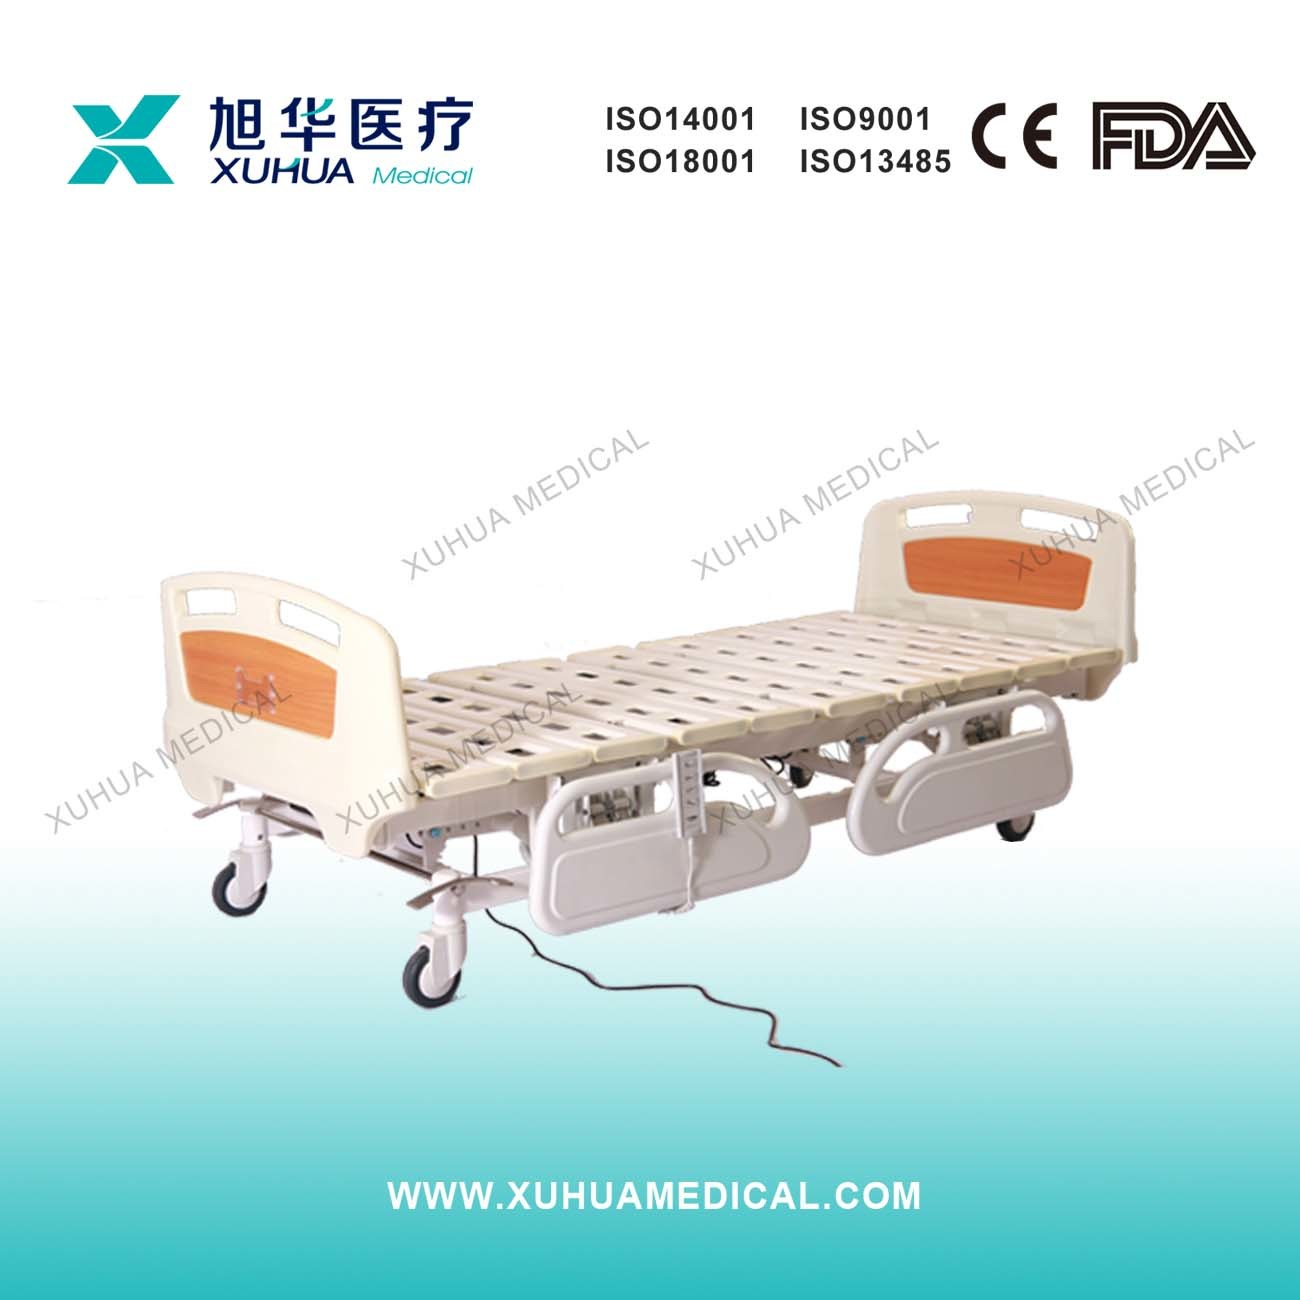 Multifunction Electric Medical Bed (XH-3) Five Functions